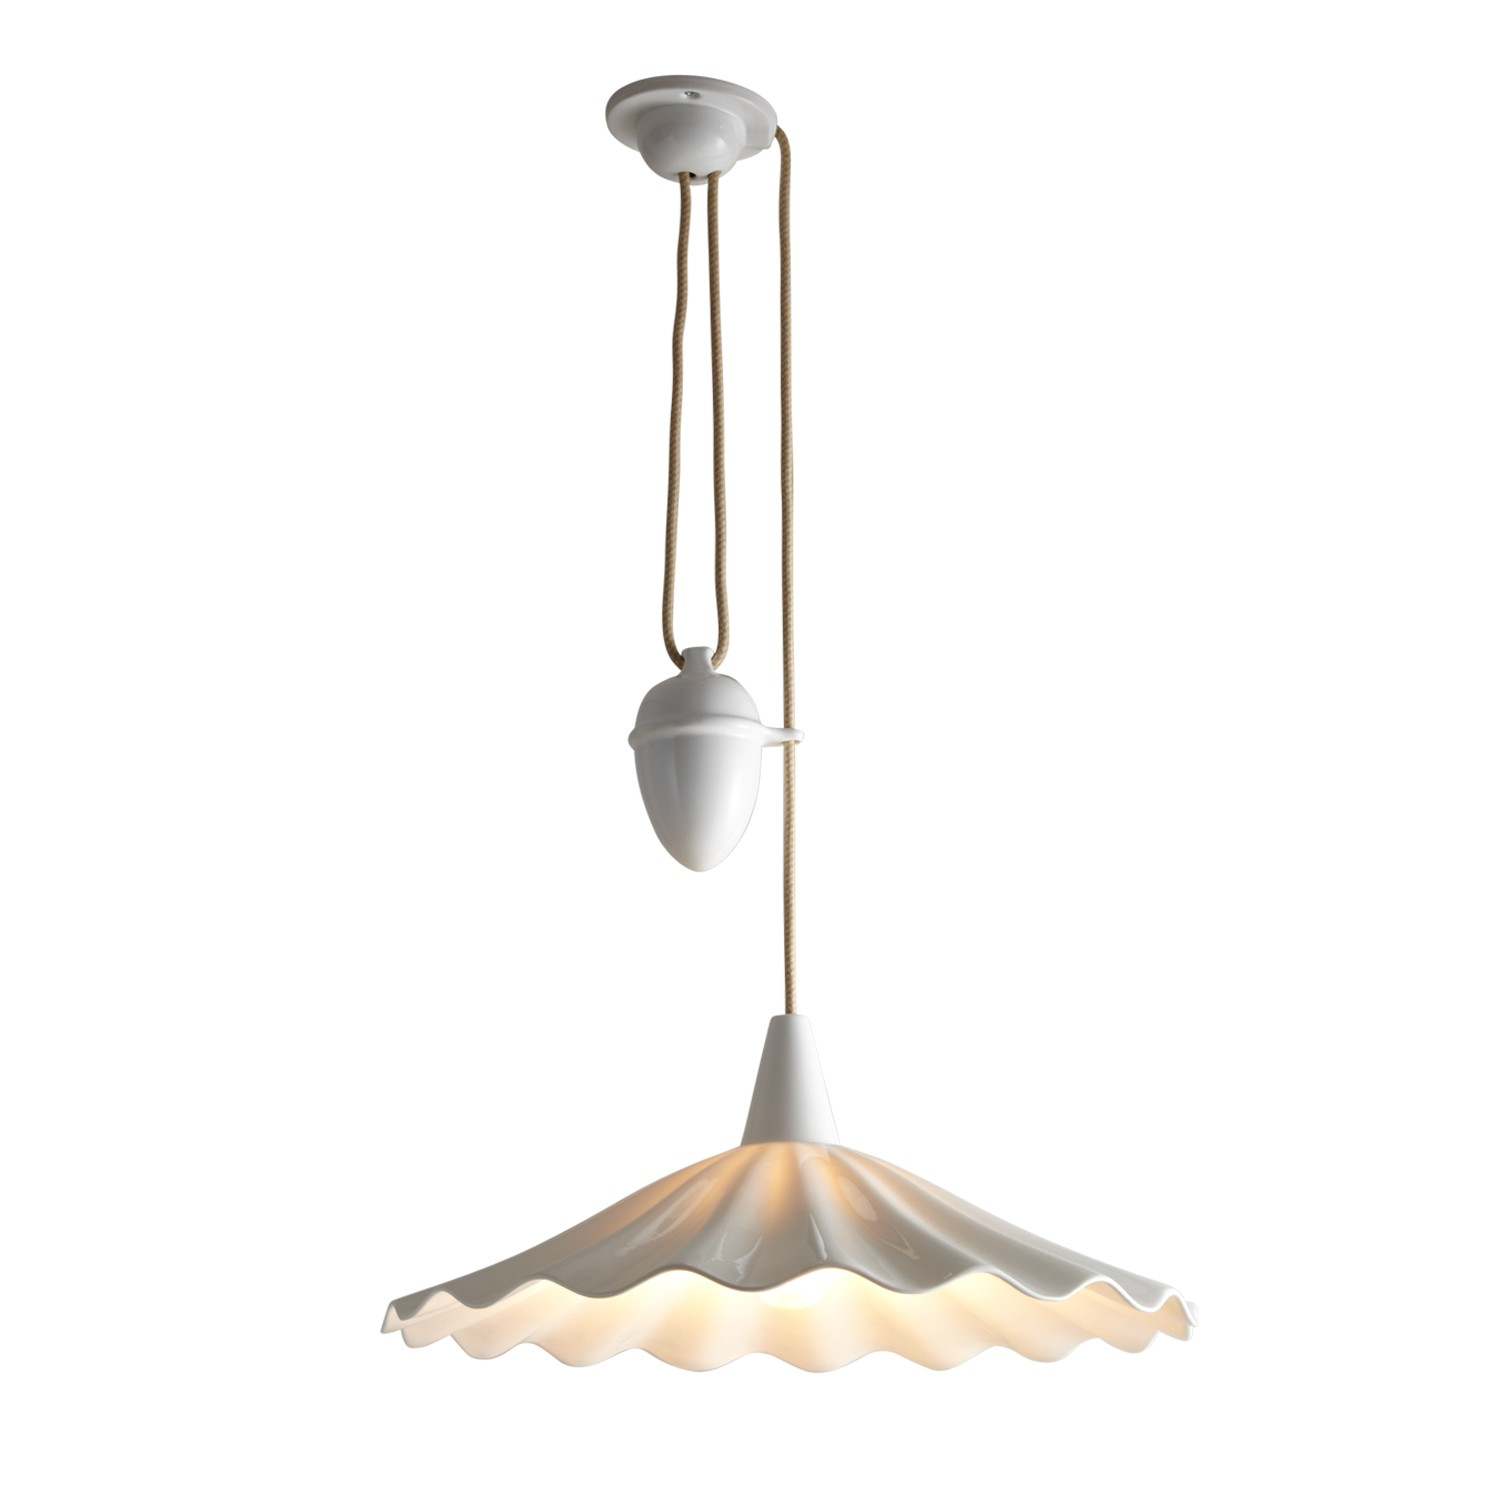 Christie Pendant Light Rise & Fall Cable